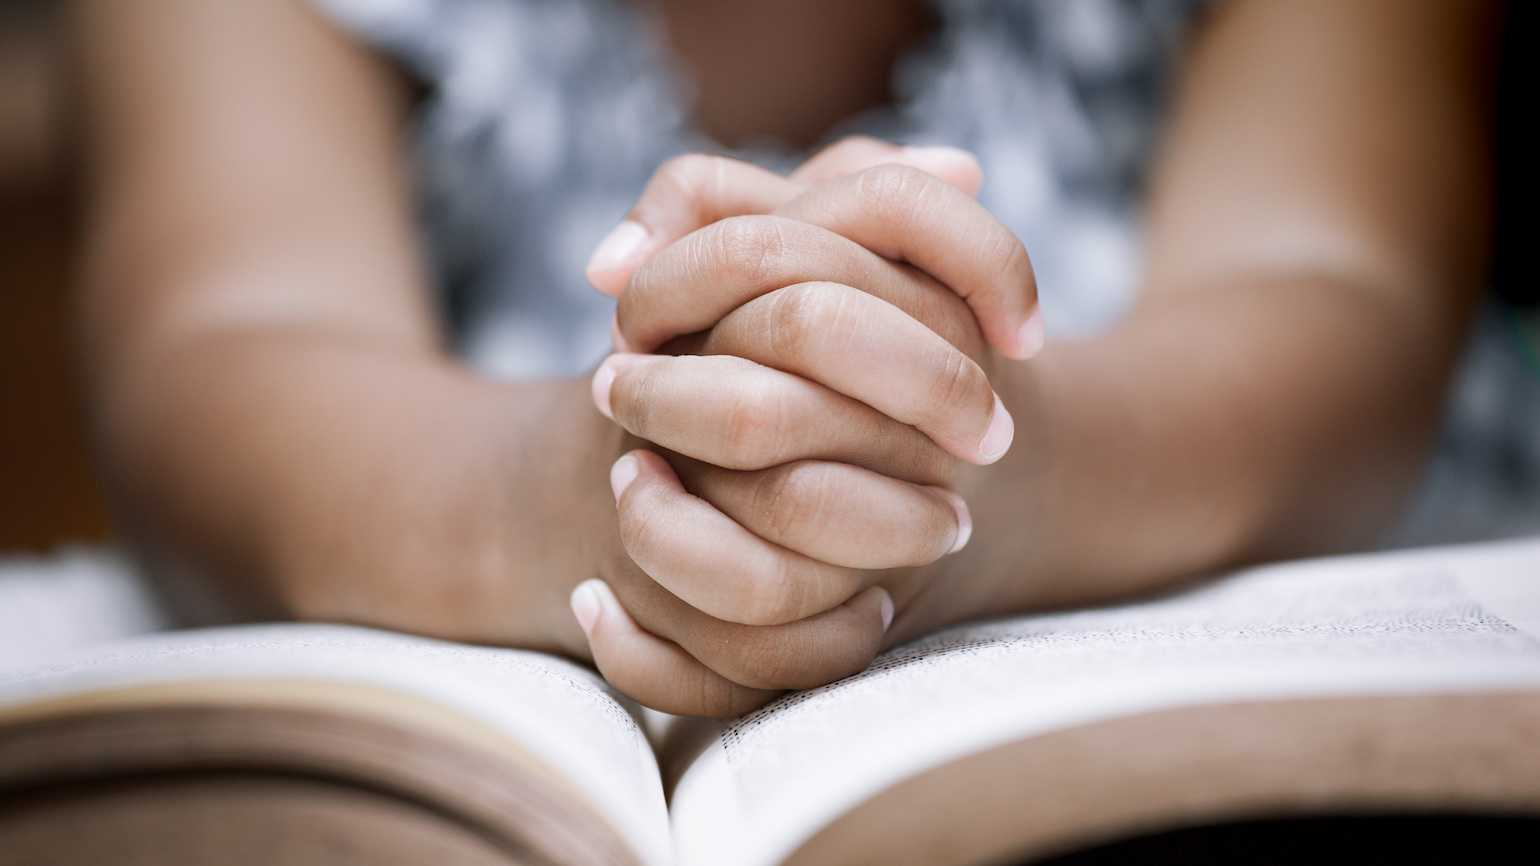 6 Bible Verses for Healing of Mind, Body and Spirit | Guideposts